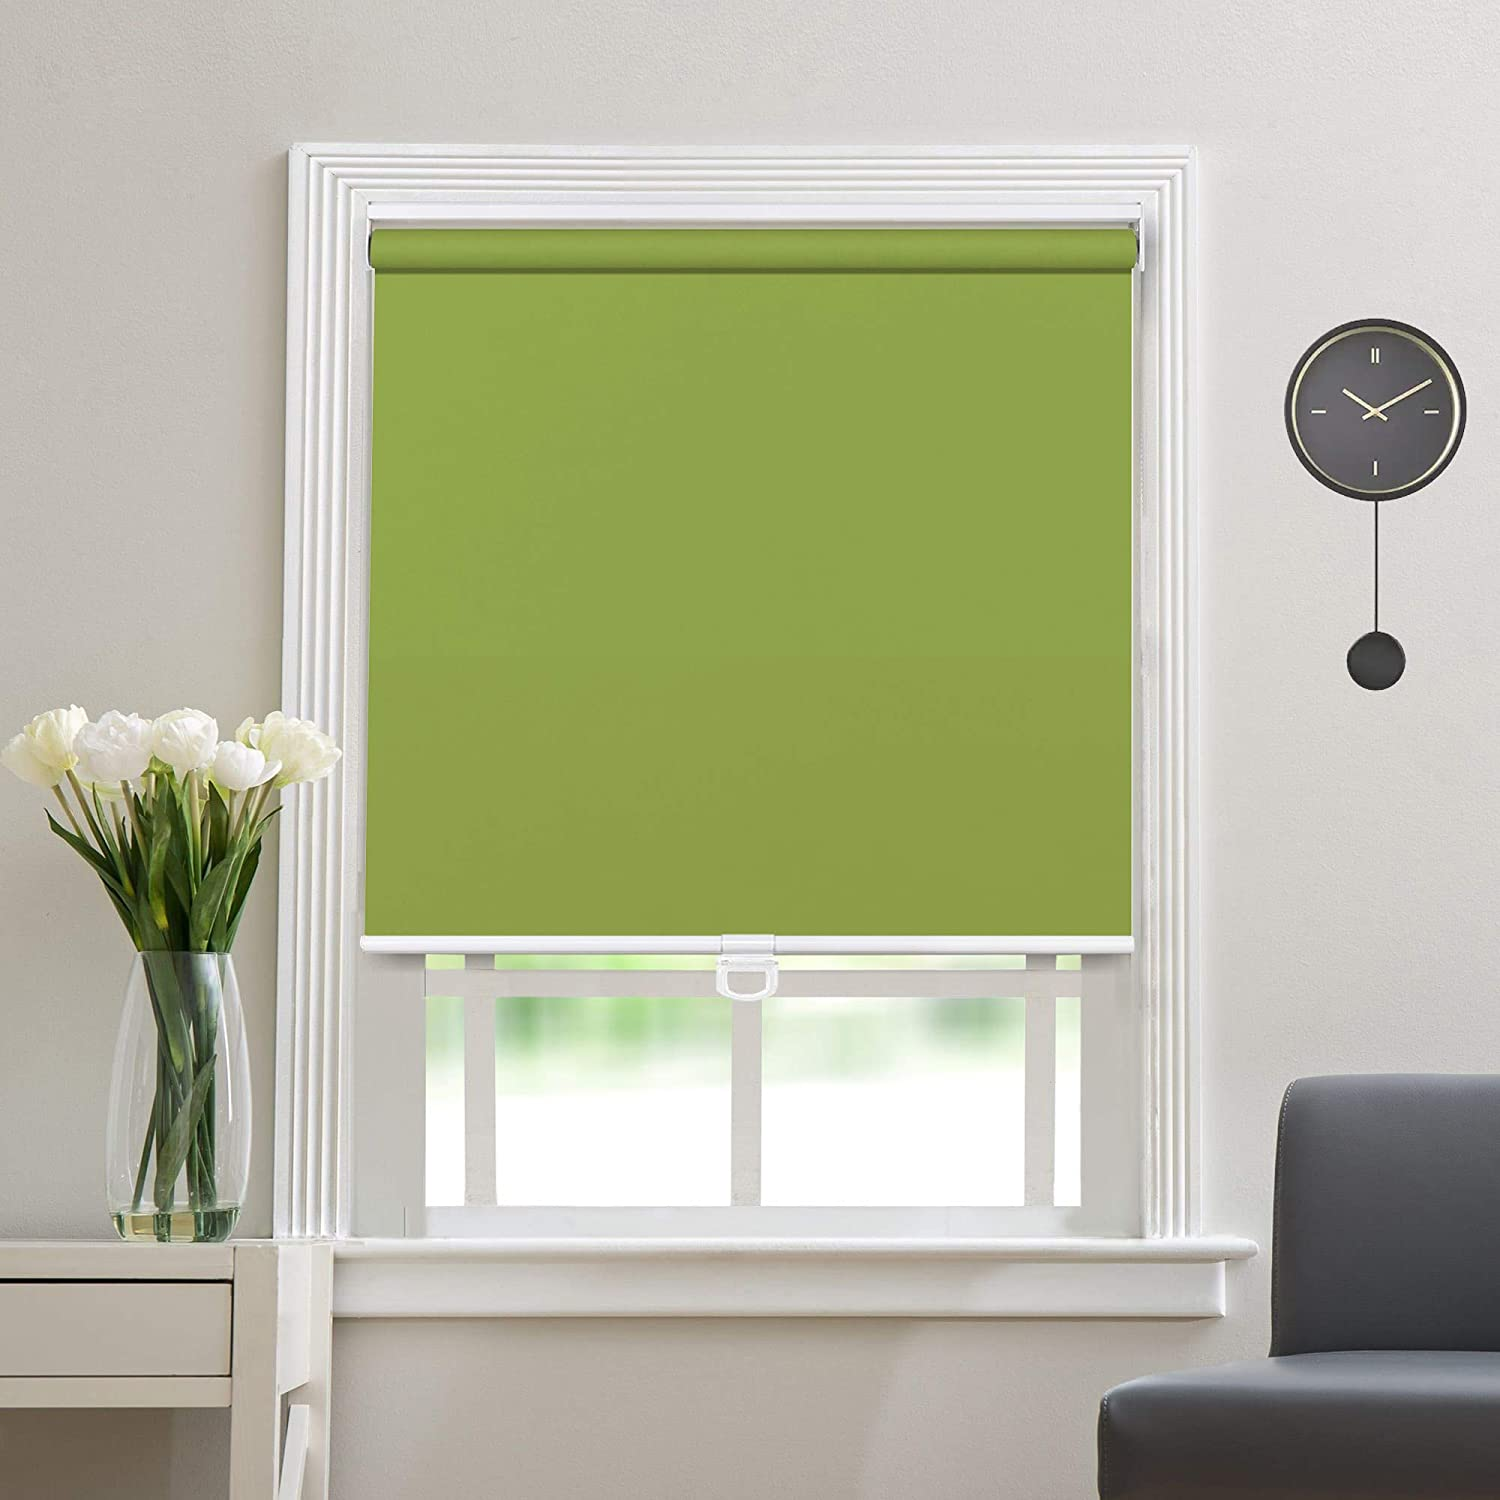 Blackout Cordless Roller Blinds and Cheap super special price Windows Safety - for Shades Limited price